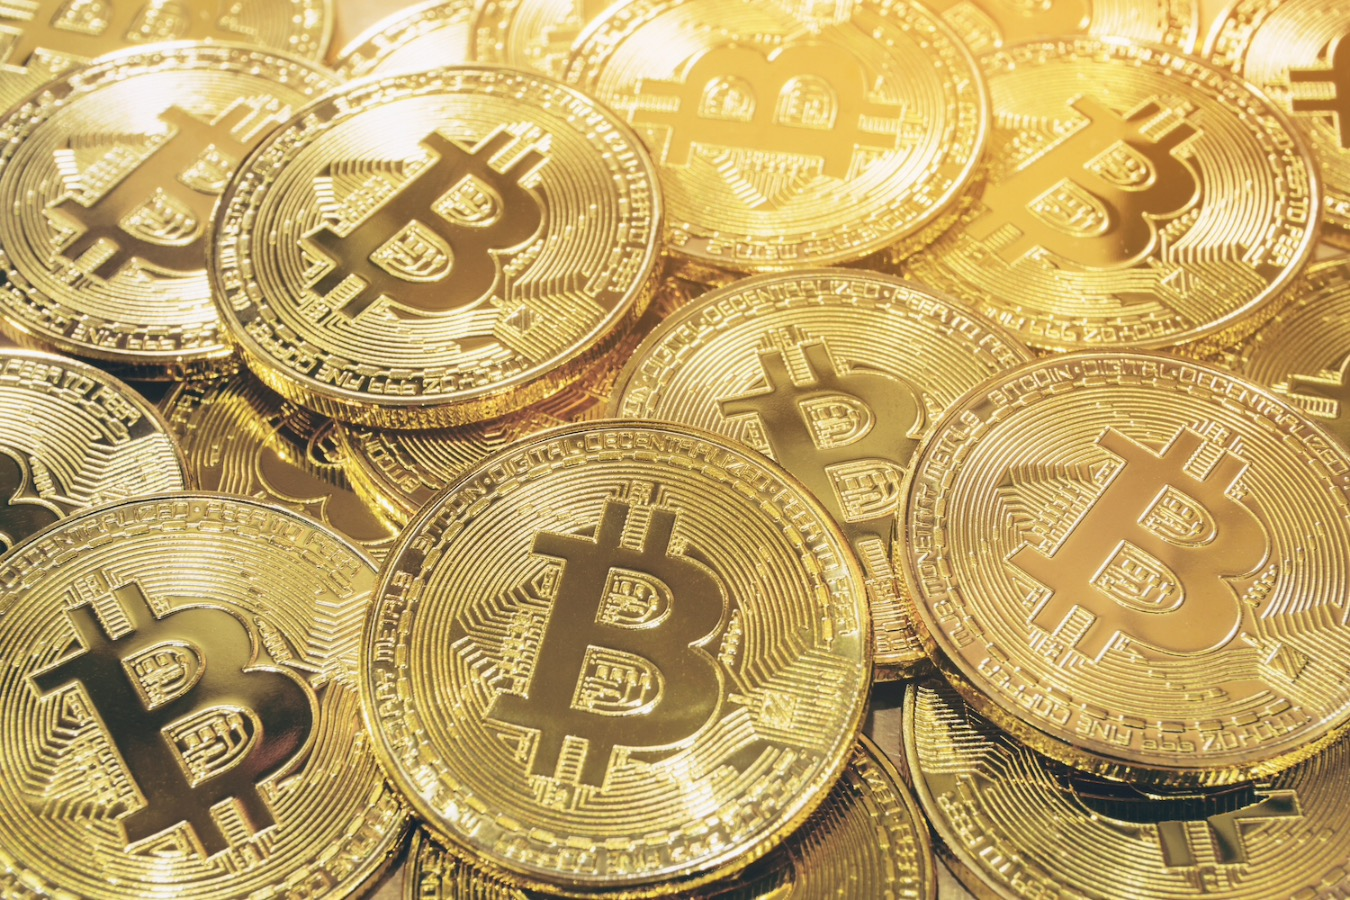 How To Buy Discounted Bitcoin